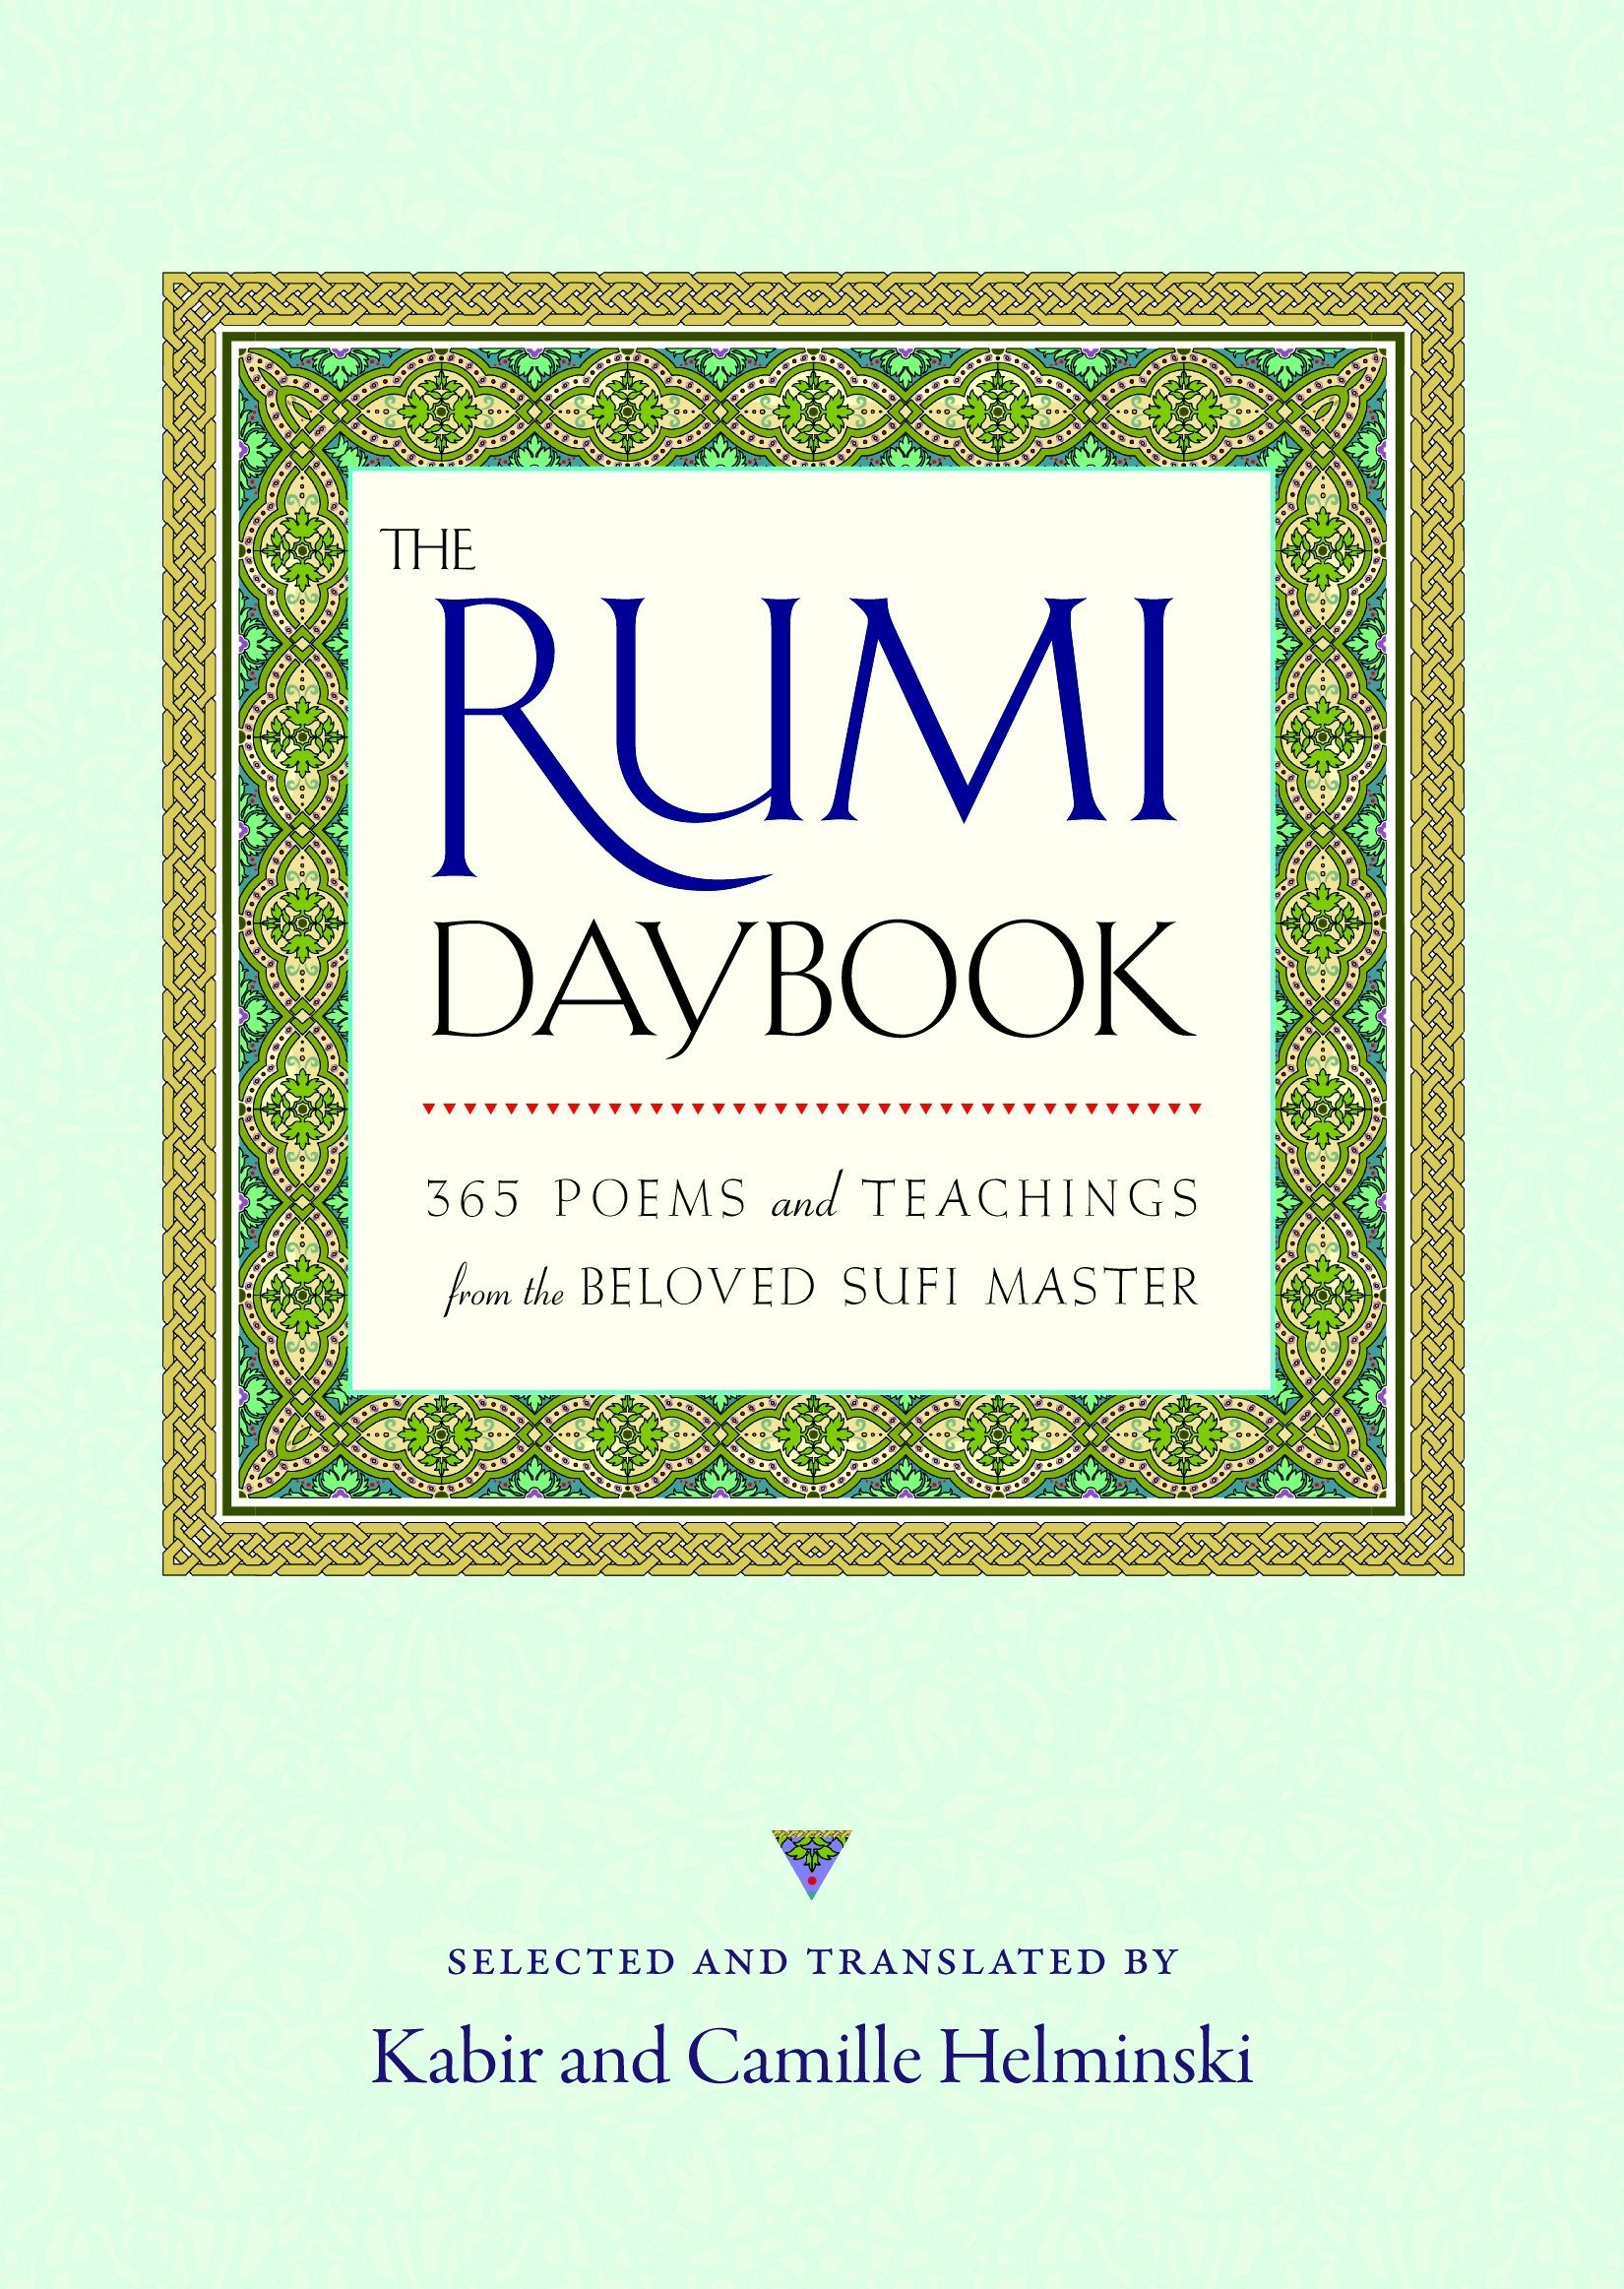 The Rumi Daybook  365 Poems And Teachings From The Beloved Sufi Master